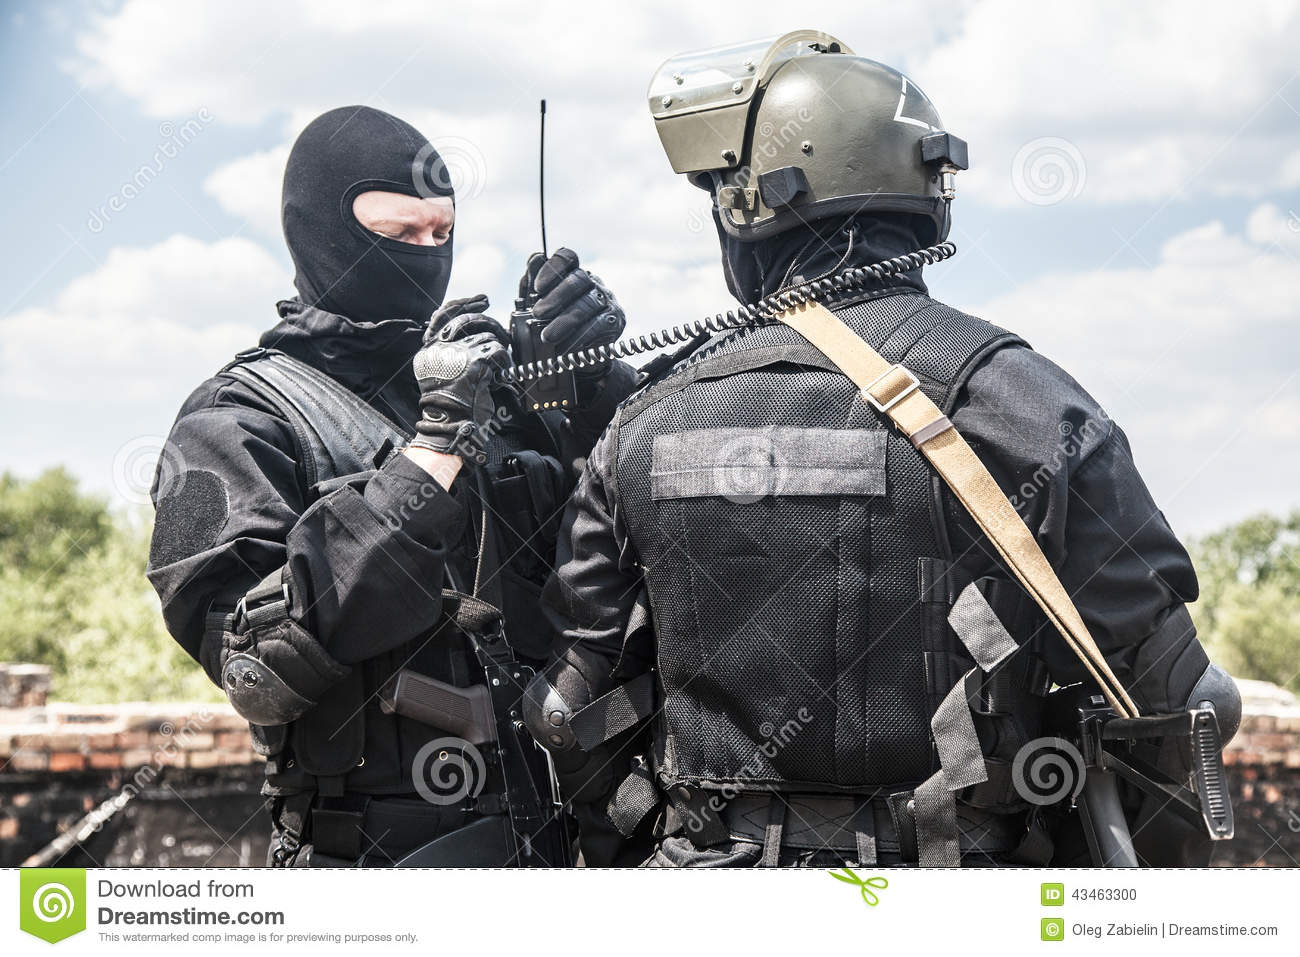 Spec ops soldiers stock photo  Image of swat, subdivision